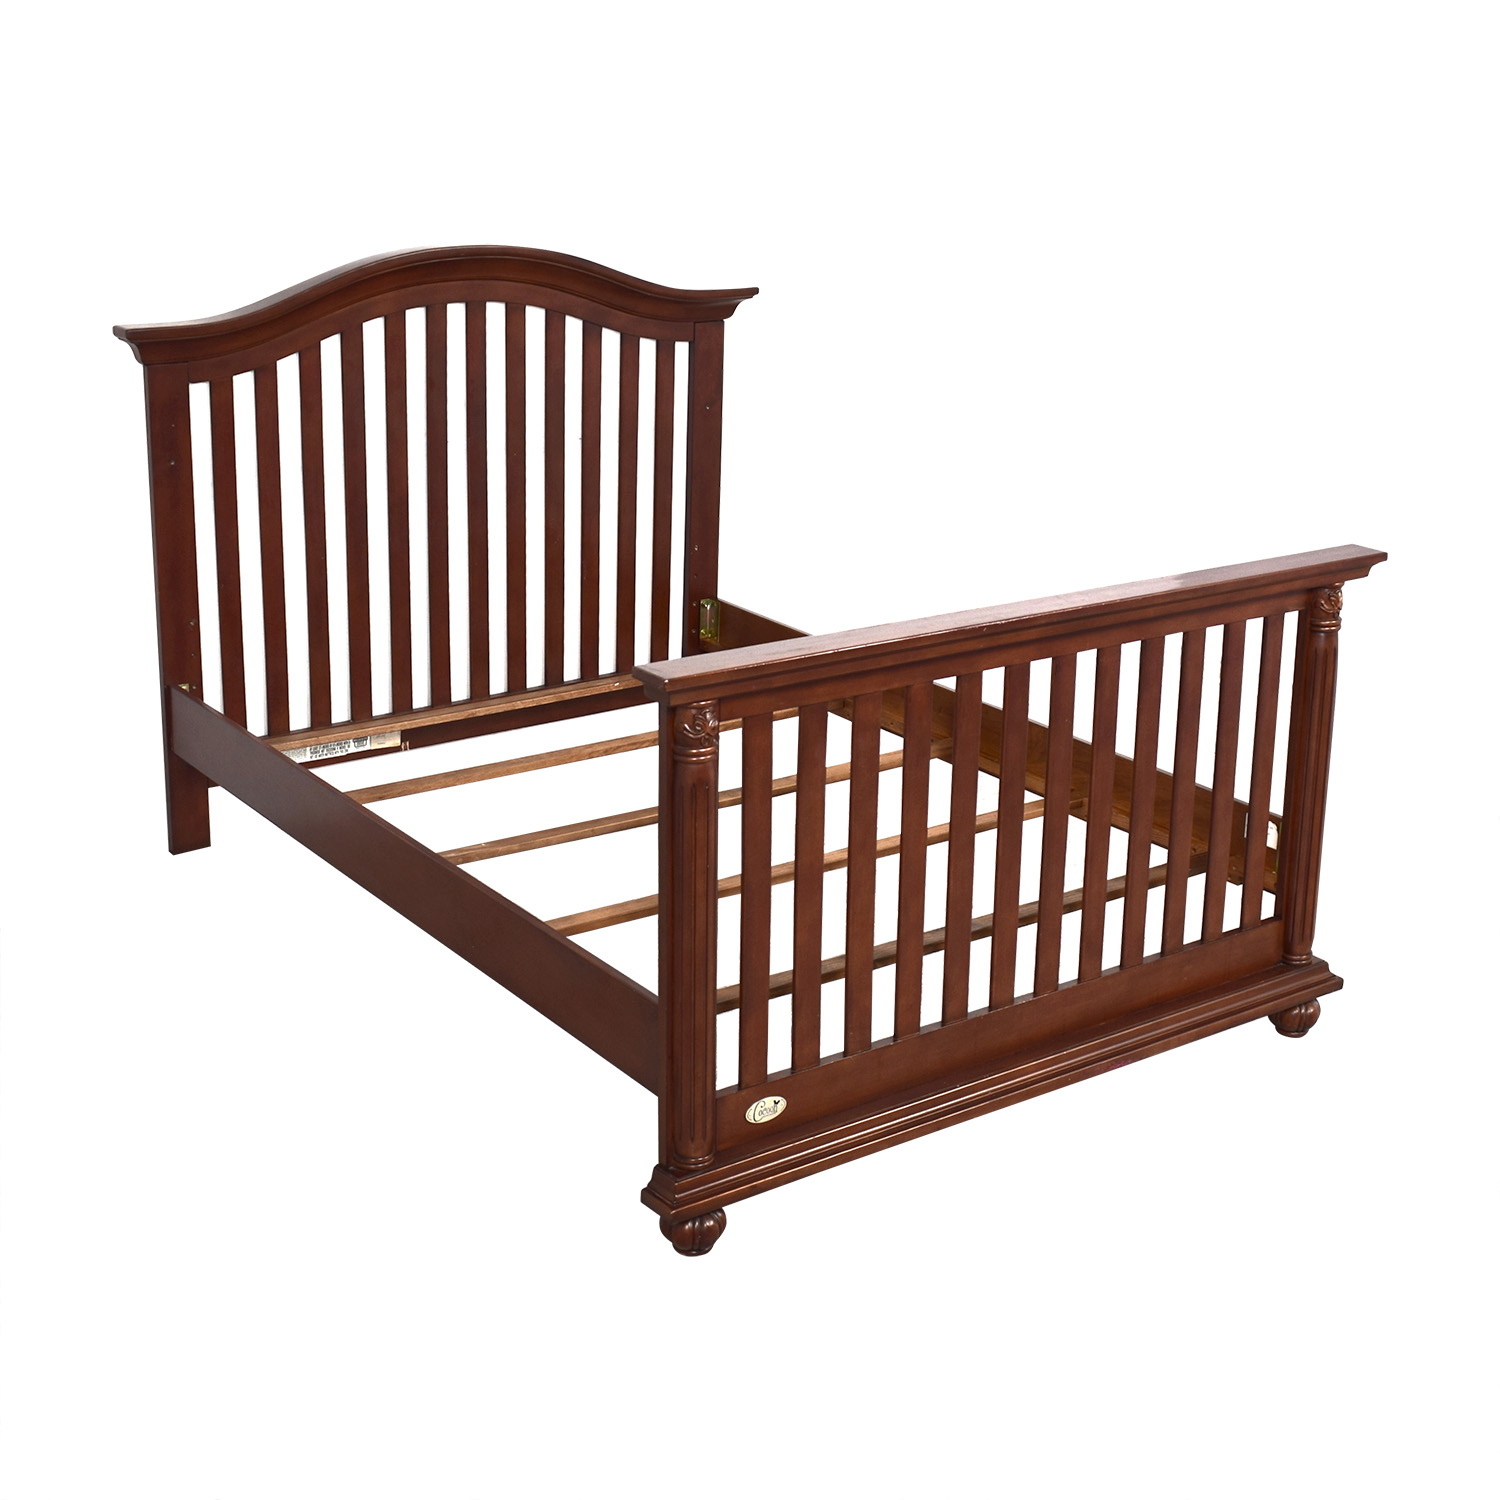 Cocoon Cocoon Furniture Full Size Bed used